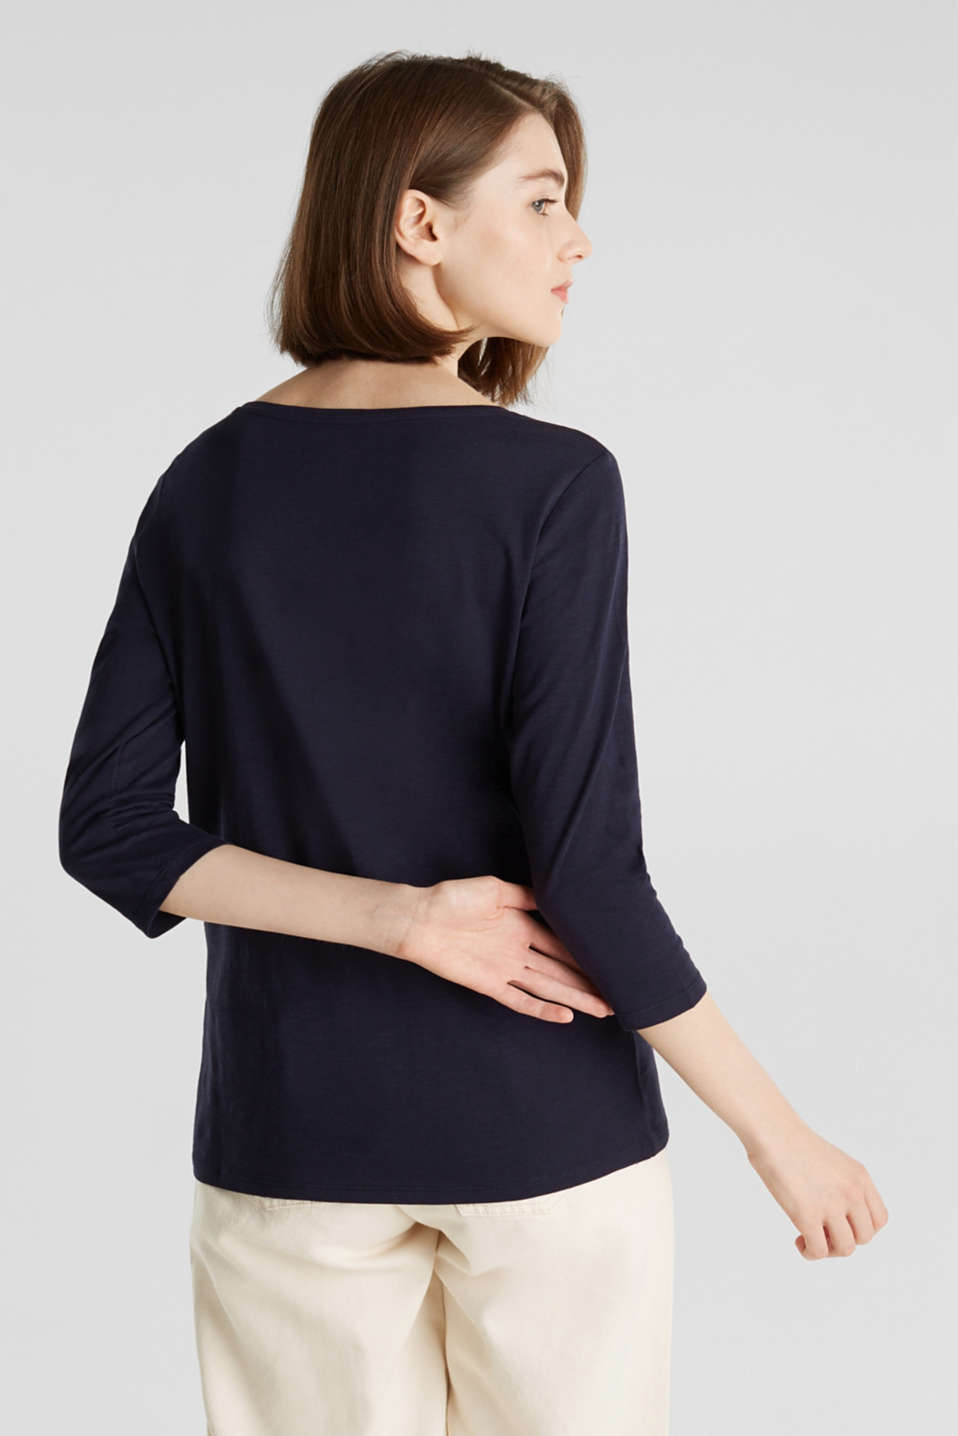 Cotton top, 3/4 sleeves, NAVY, detail image number 3